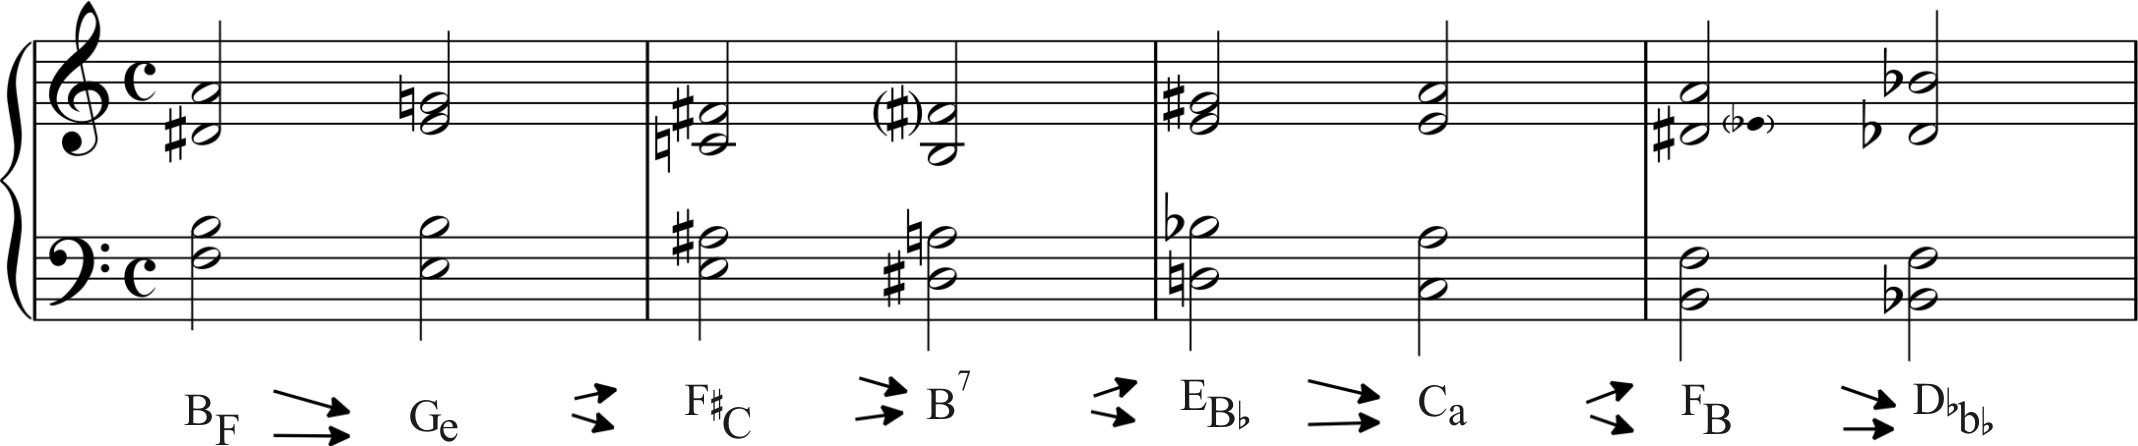 Examples Of Harmonic Progressions With Homotonic Relaxions